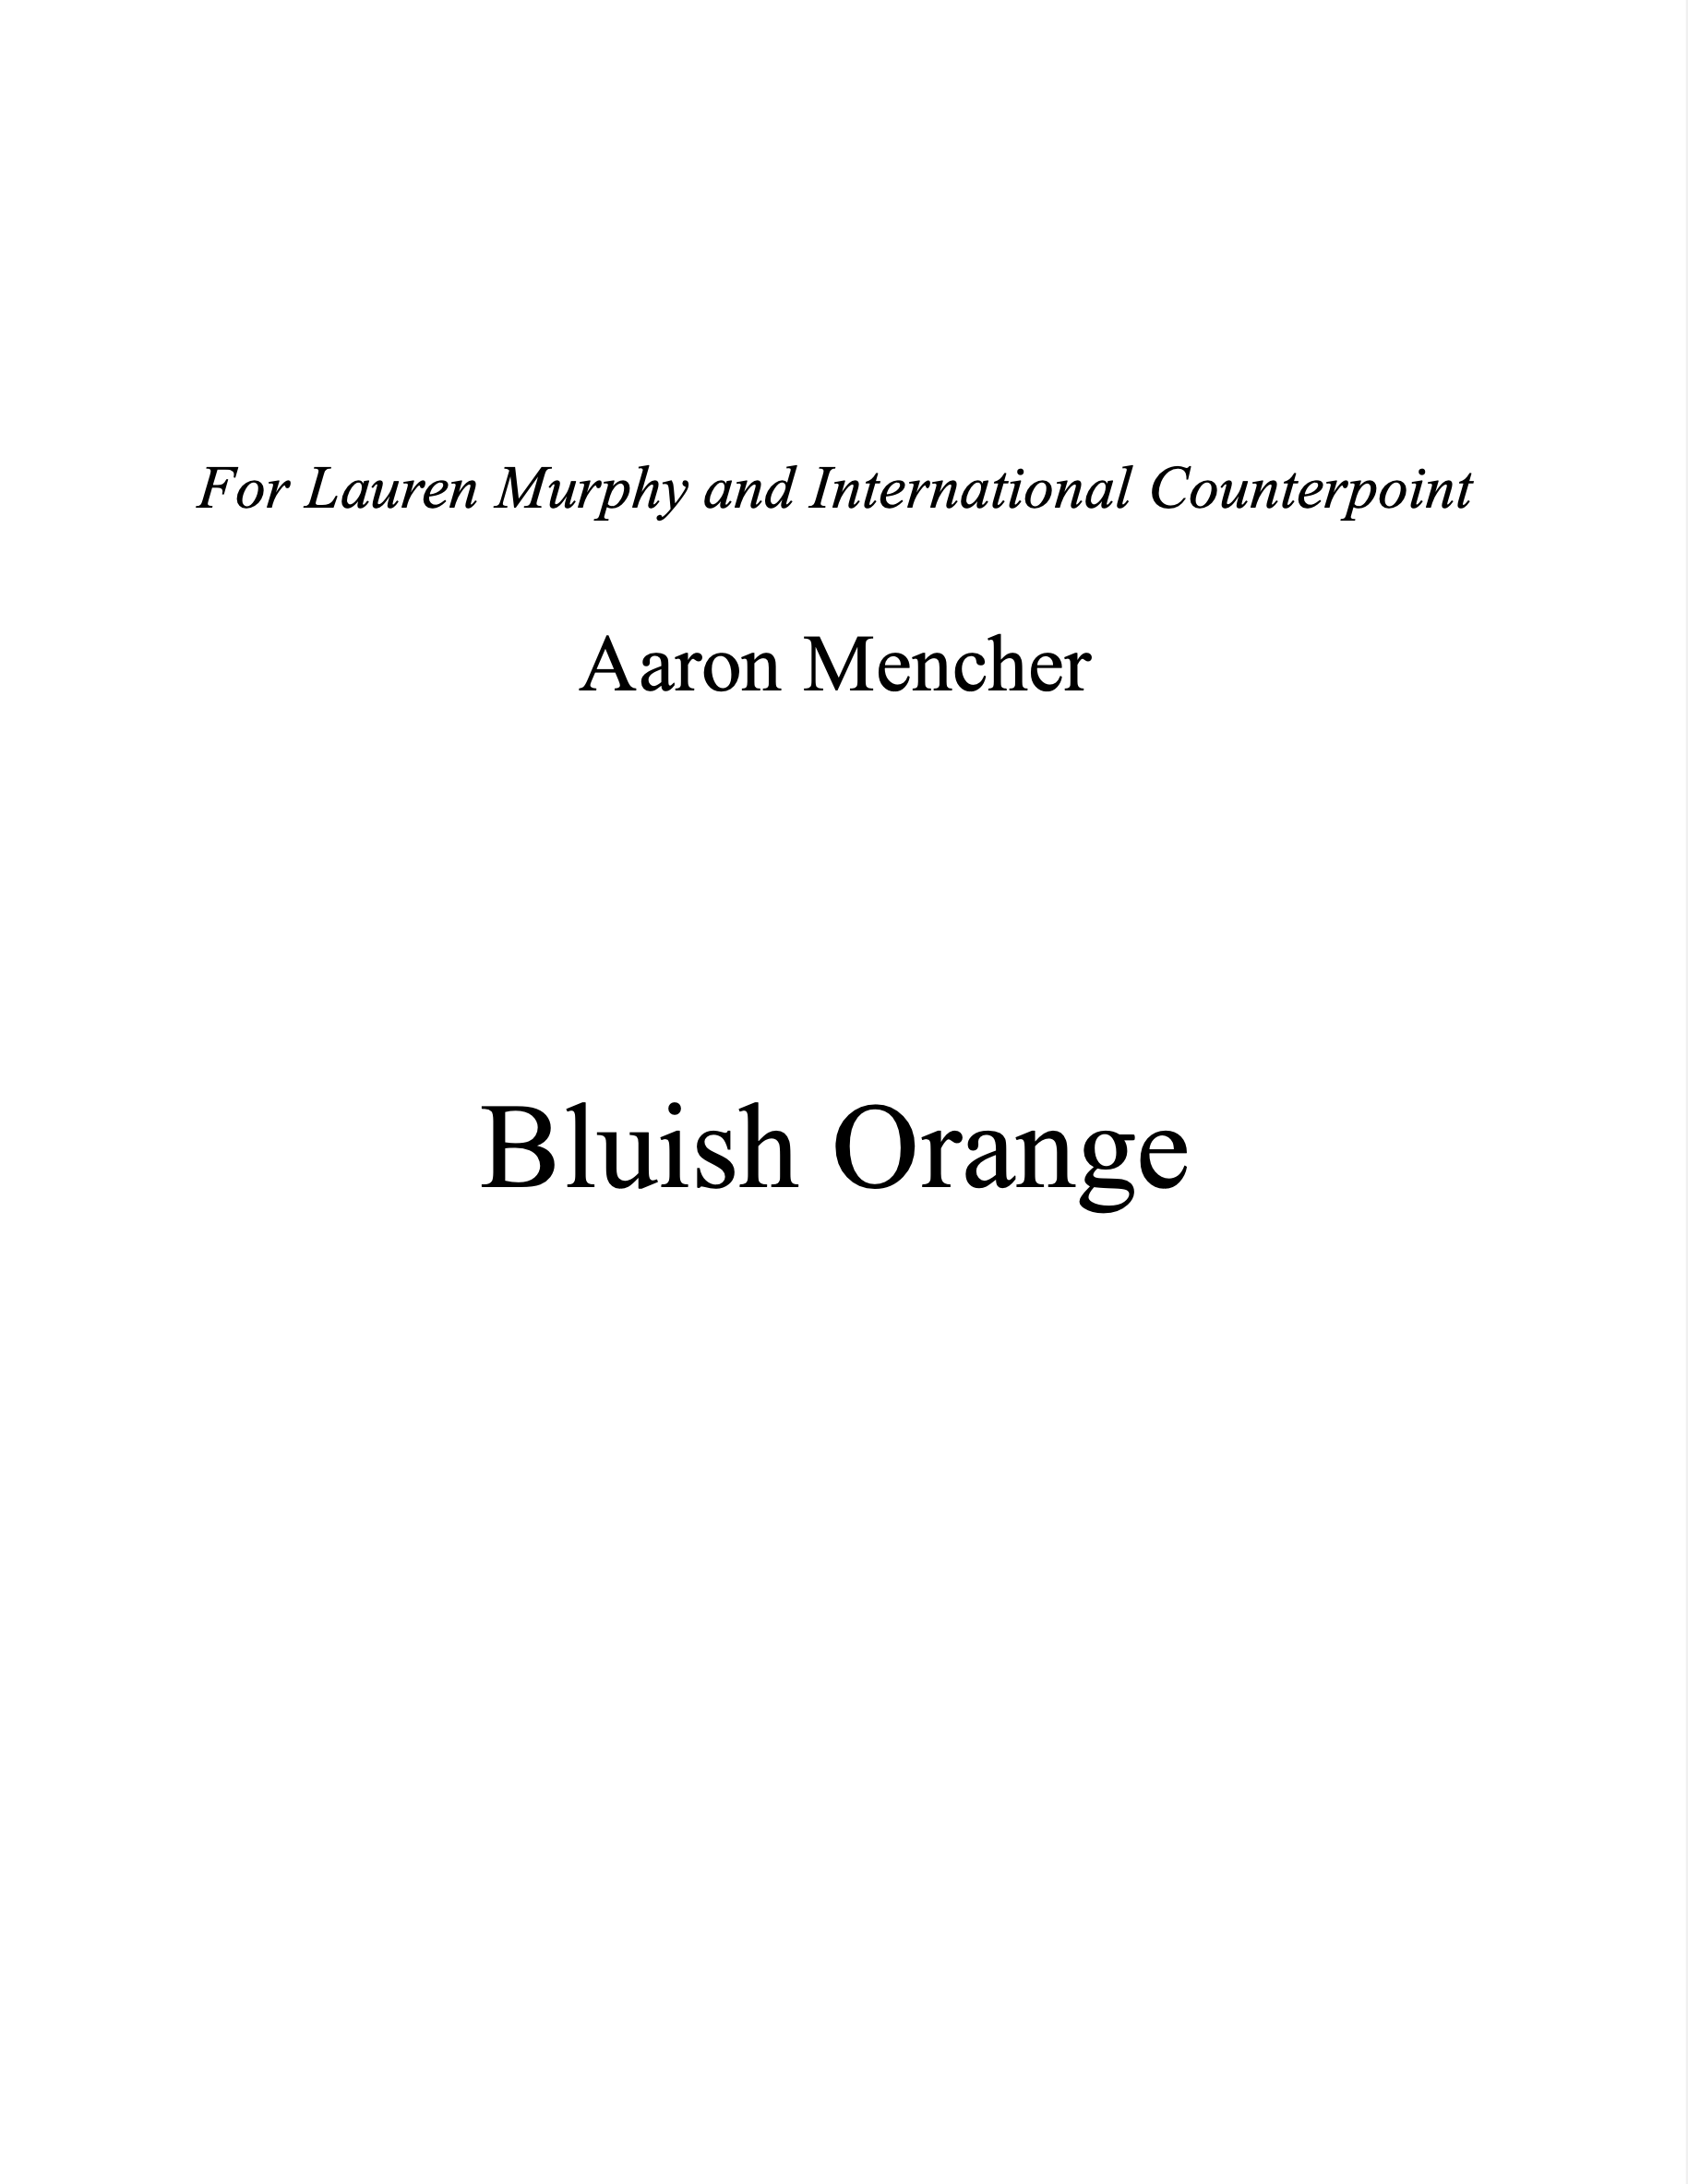 Bluish Orange by Aaron Mencher